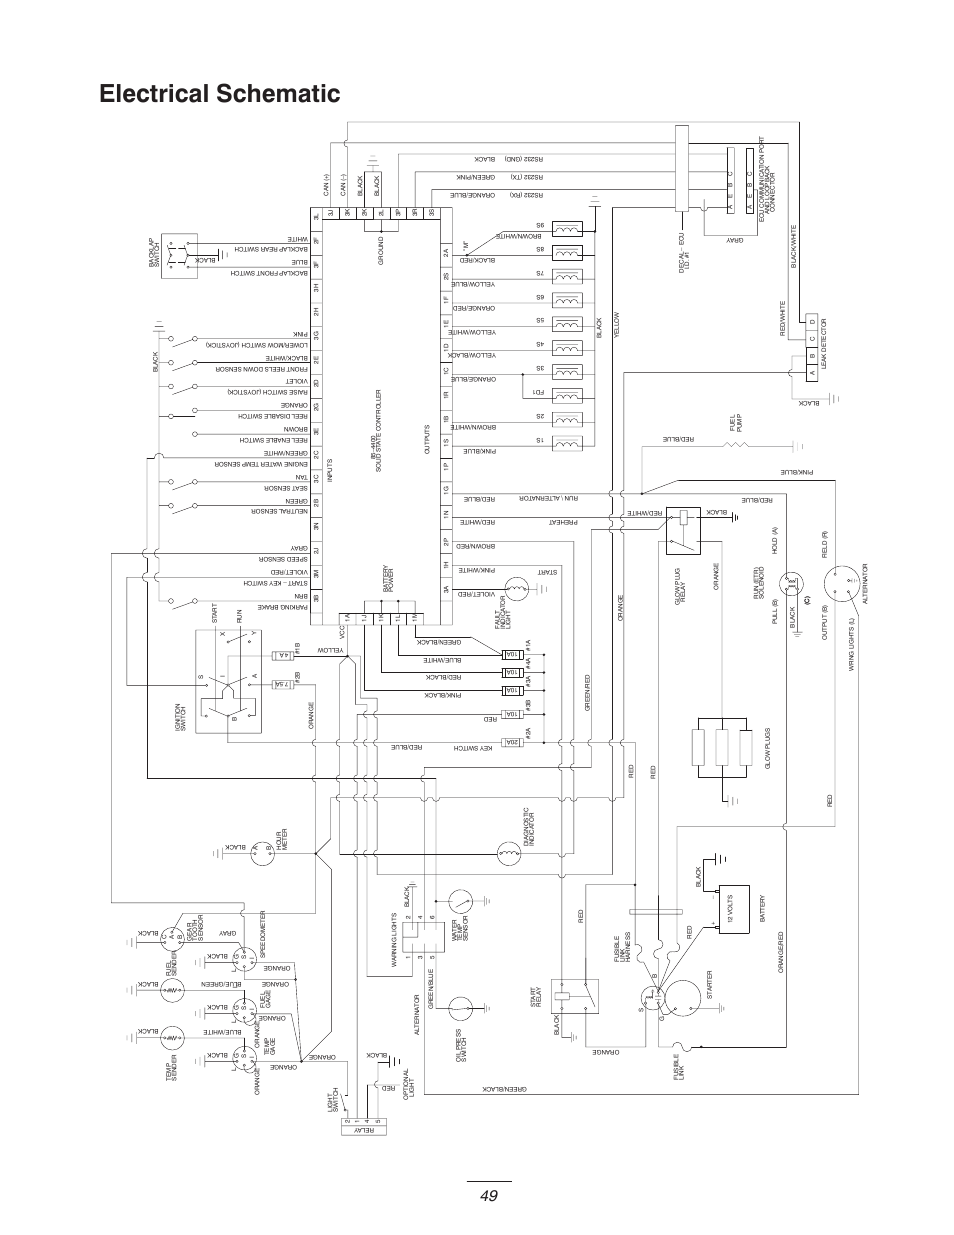 hight resolution of electrical schematic toro 5400 d user manual page 49 52